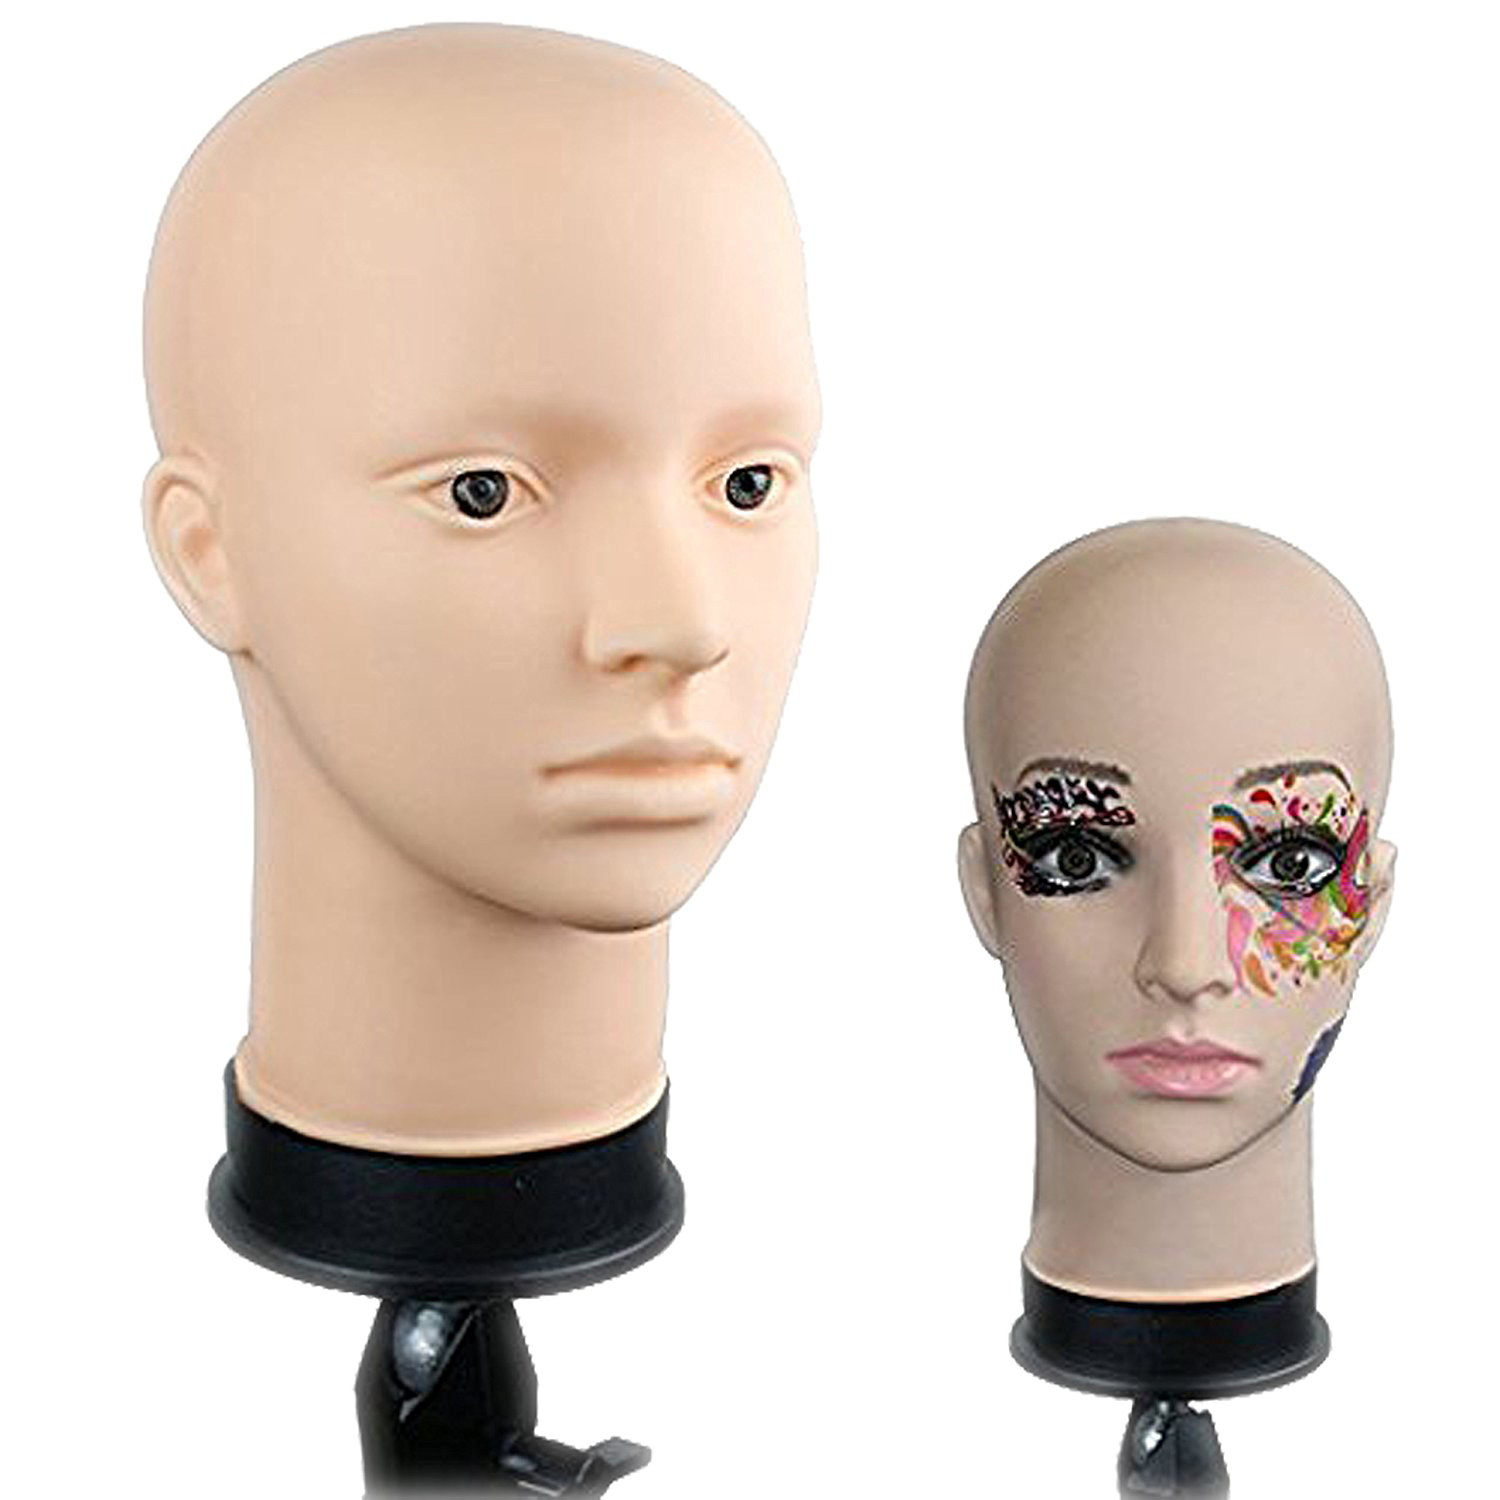 ZM-1704 - Thomas - Simple Male Silicone Mannequin Head